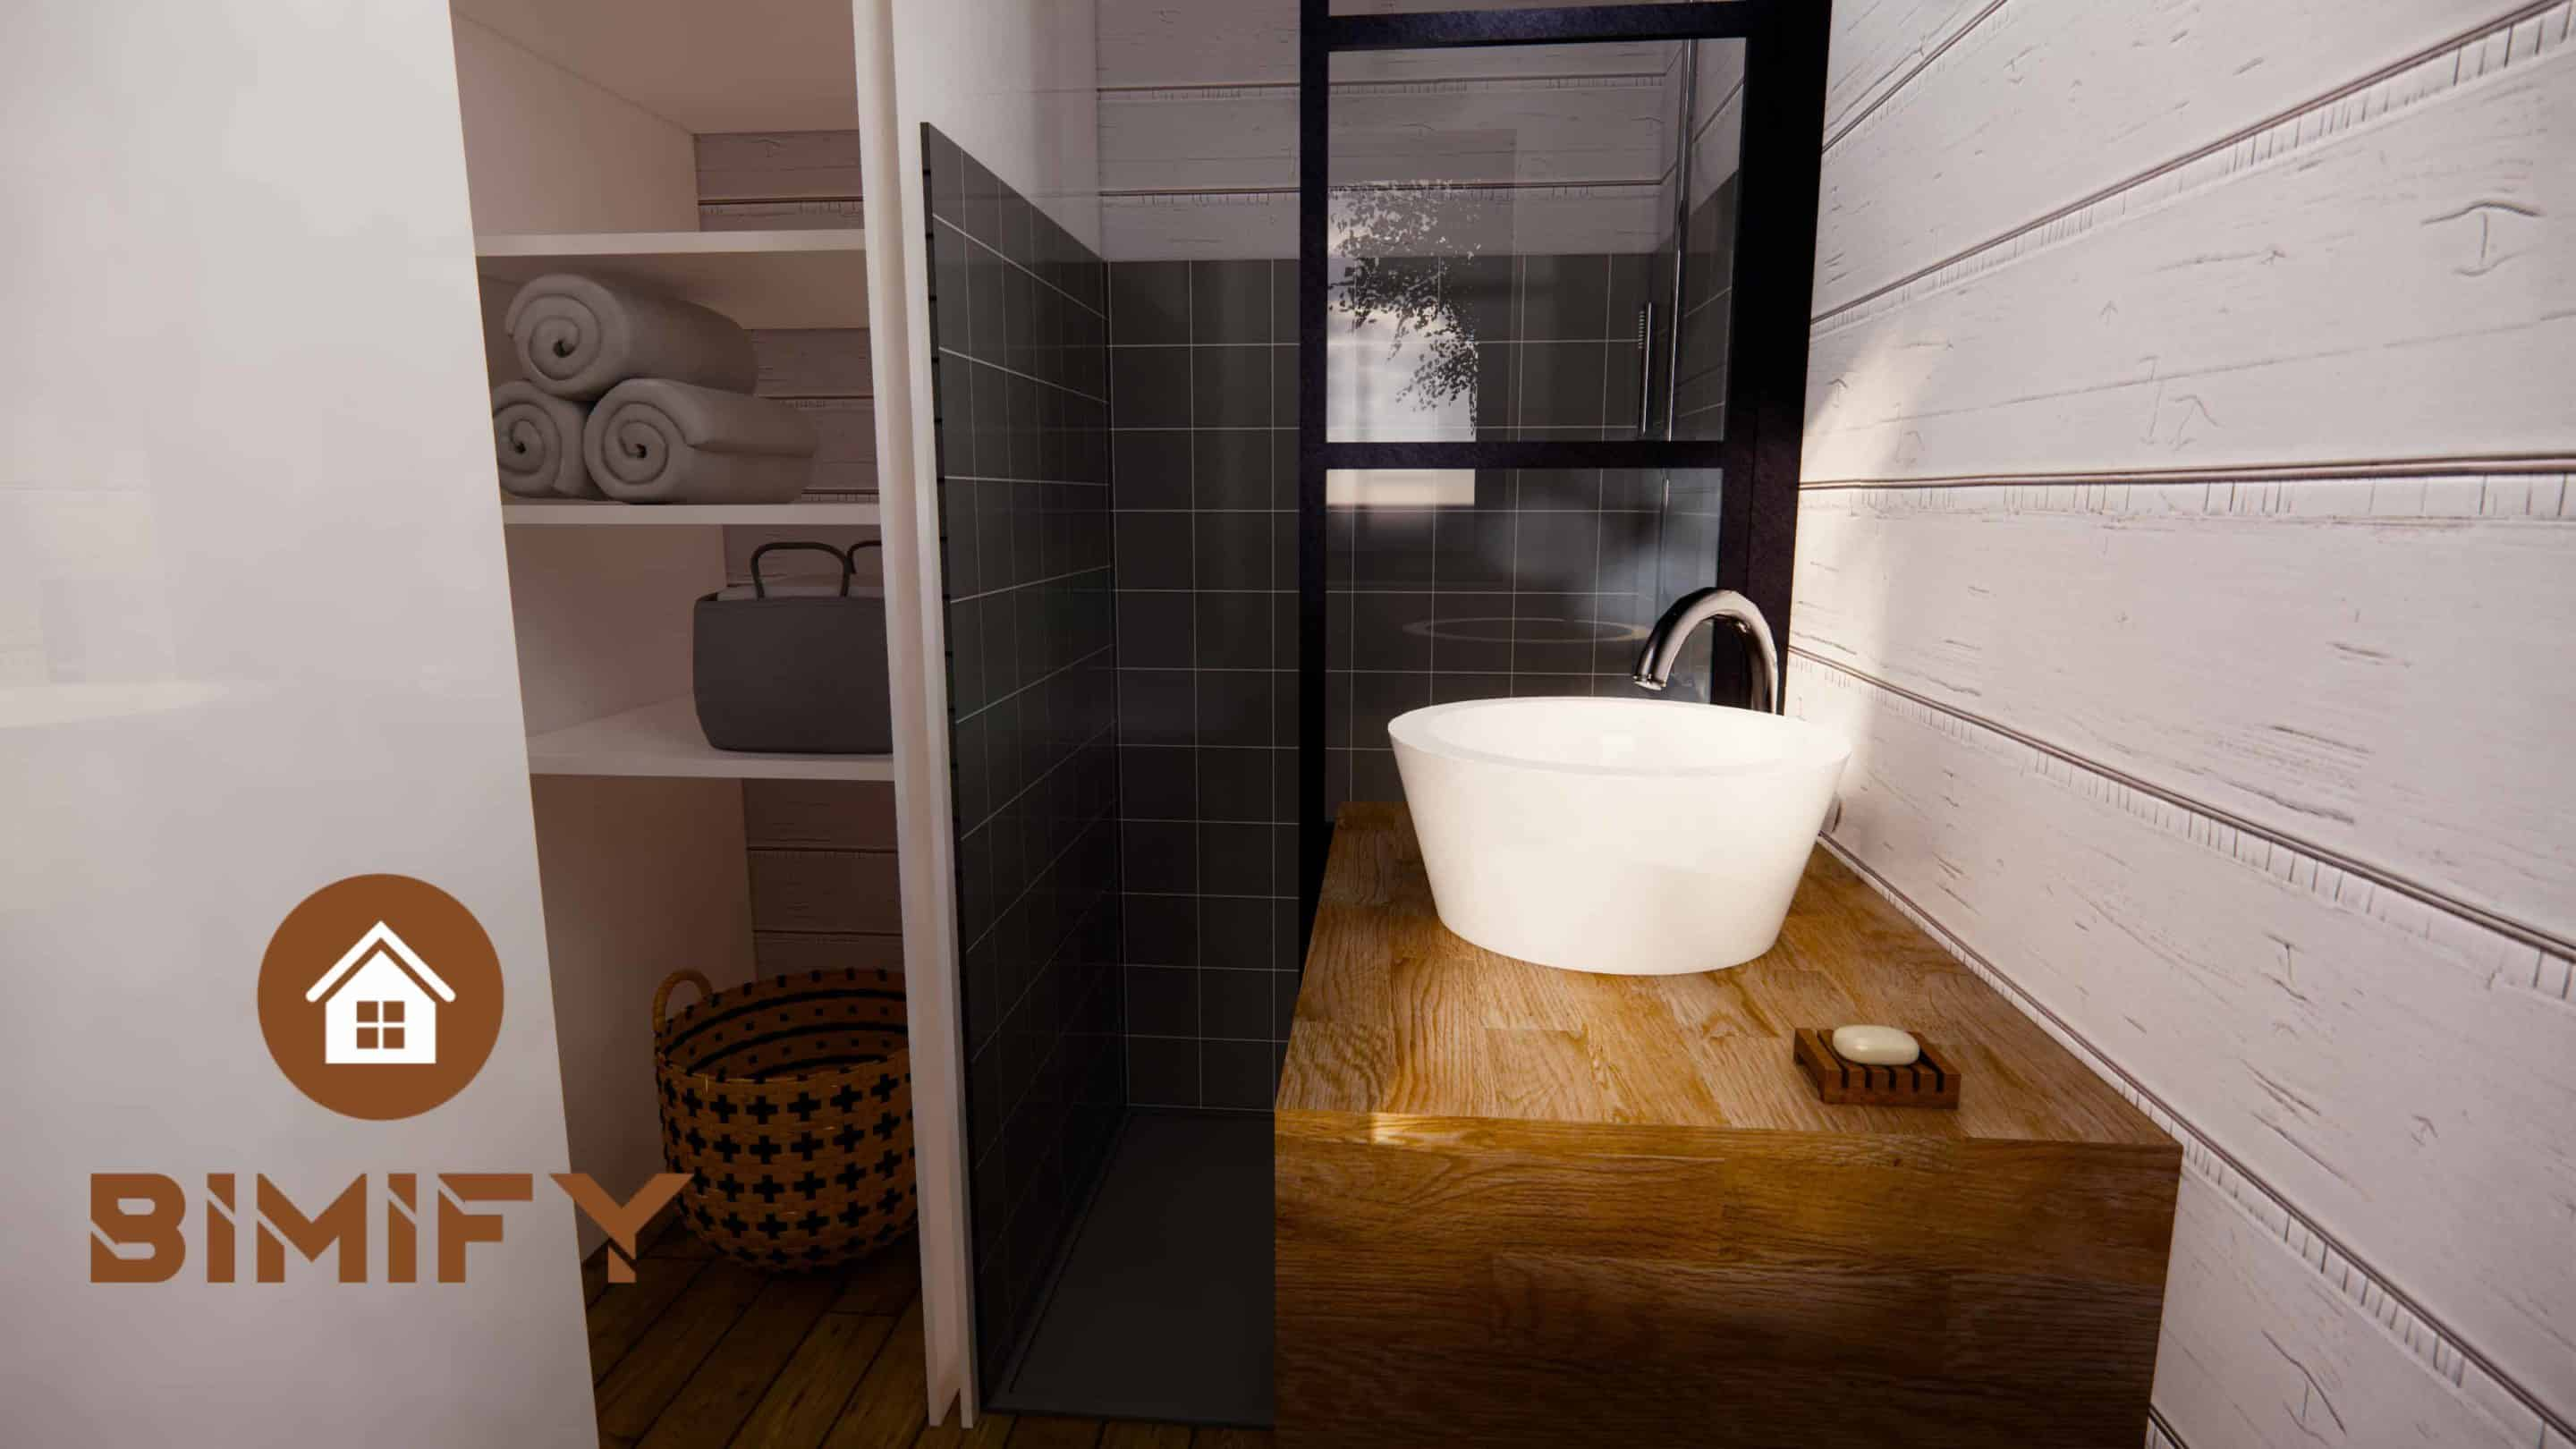 Tiny Duo 540 Baño Disposición de la casa Tiny